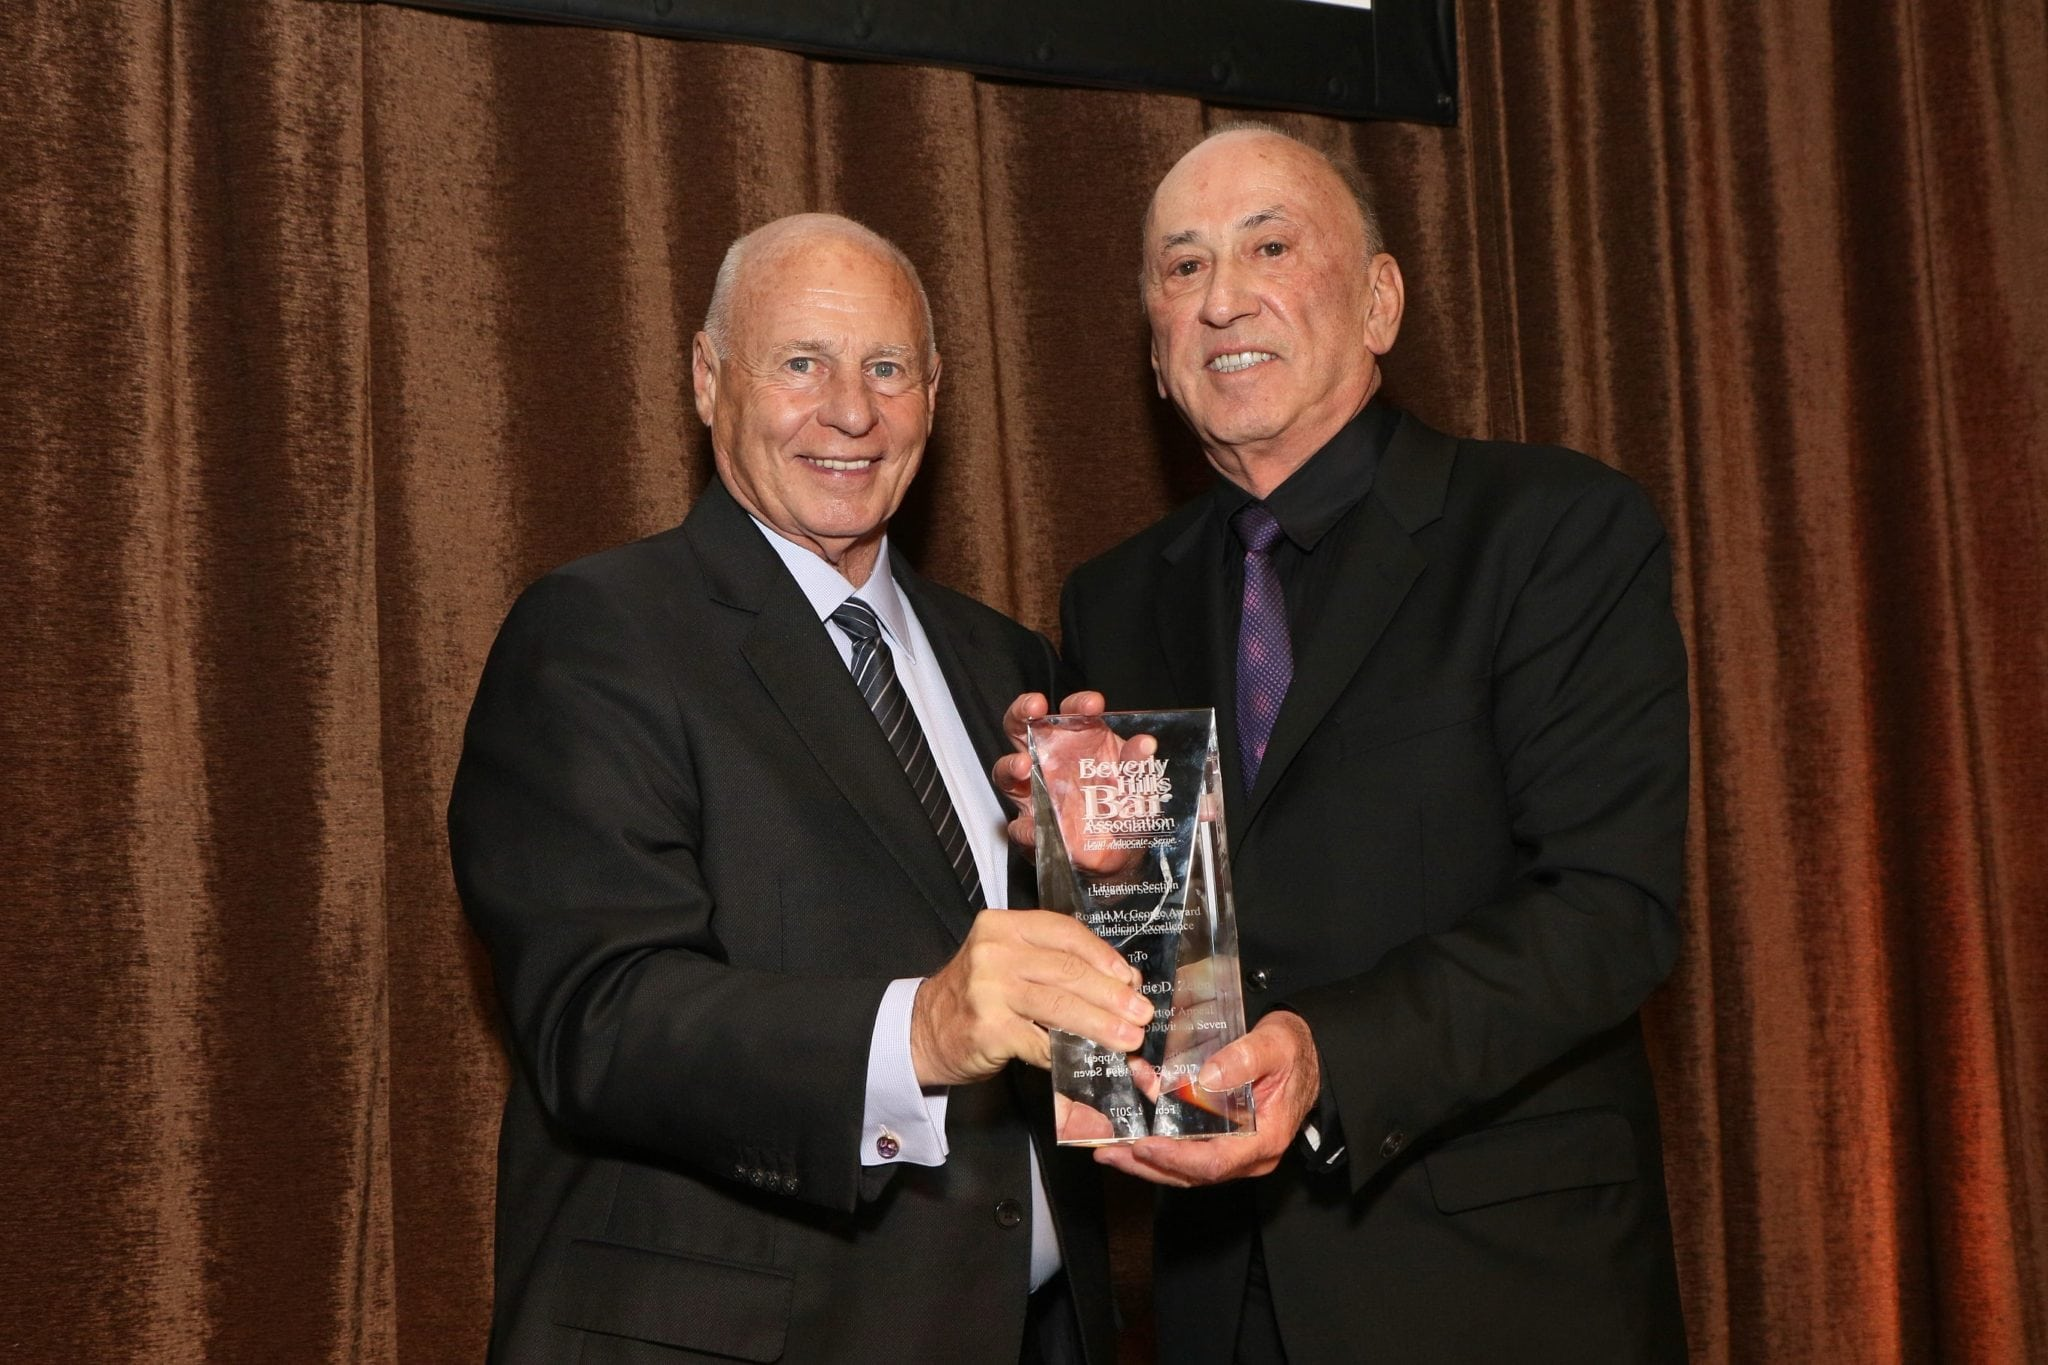 Tom Girardi presents William Shernoff with the BHBA Excellency in Advocacy Award